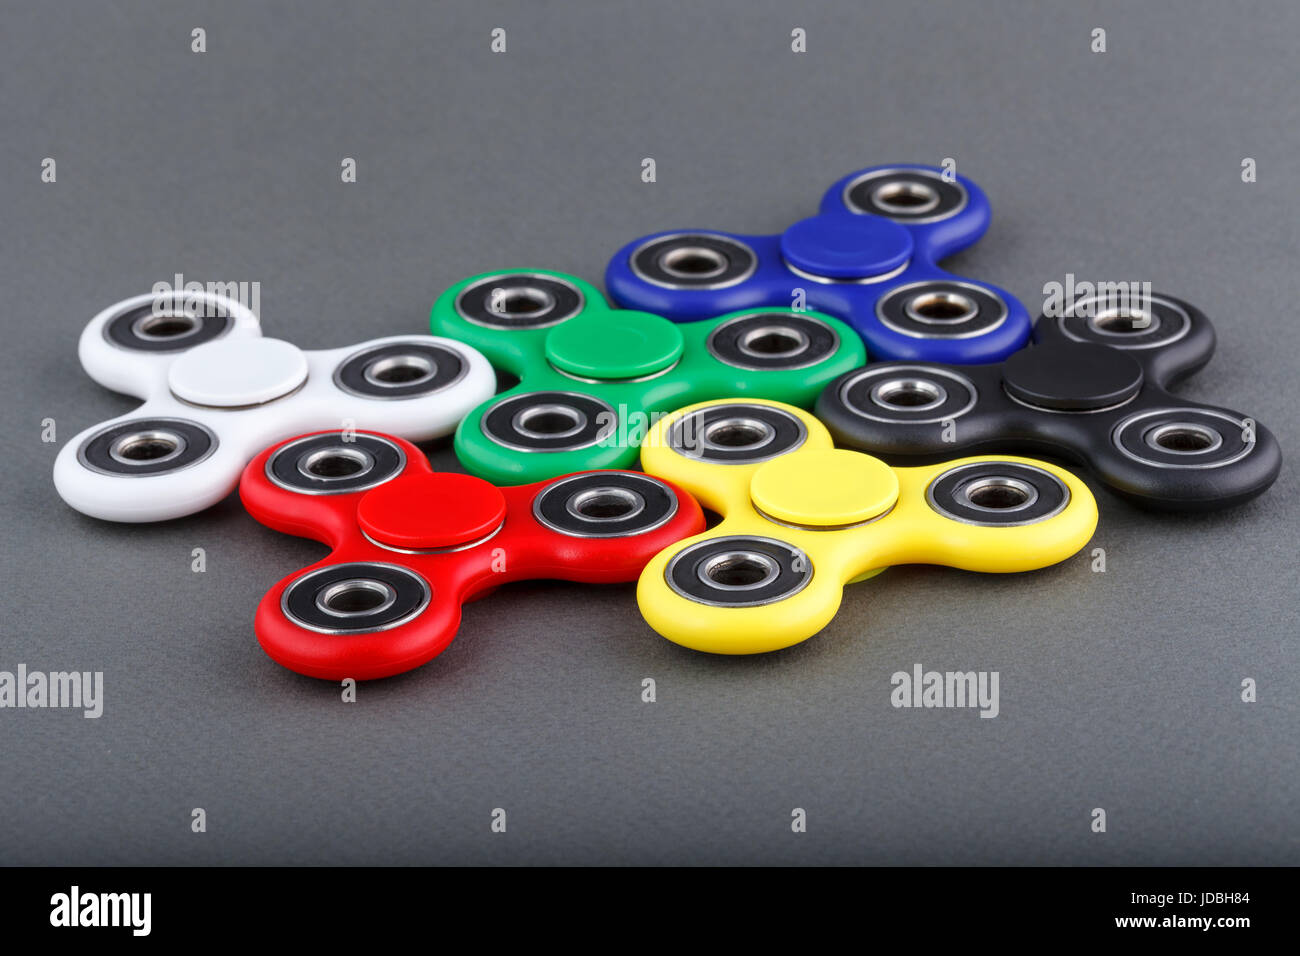 Fidget Spinner Toy Stress Reducer,Bearing Toy for ADHD EDC Hand Killing Time - Stock Image